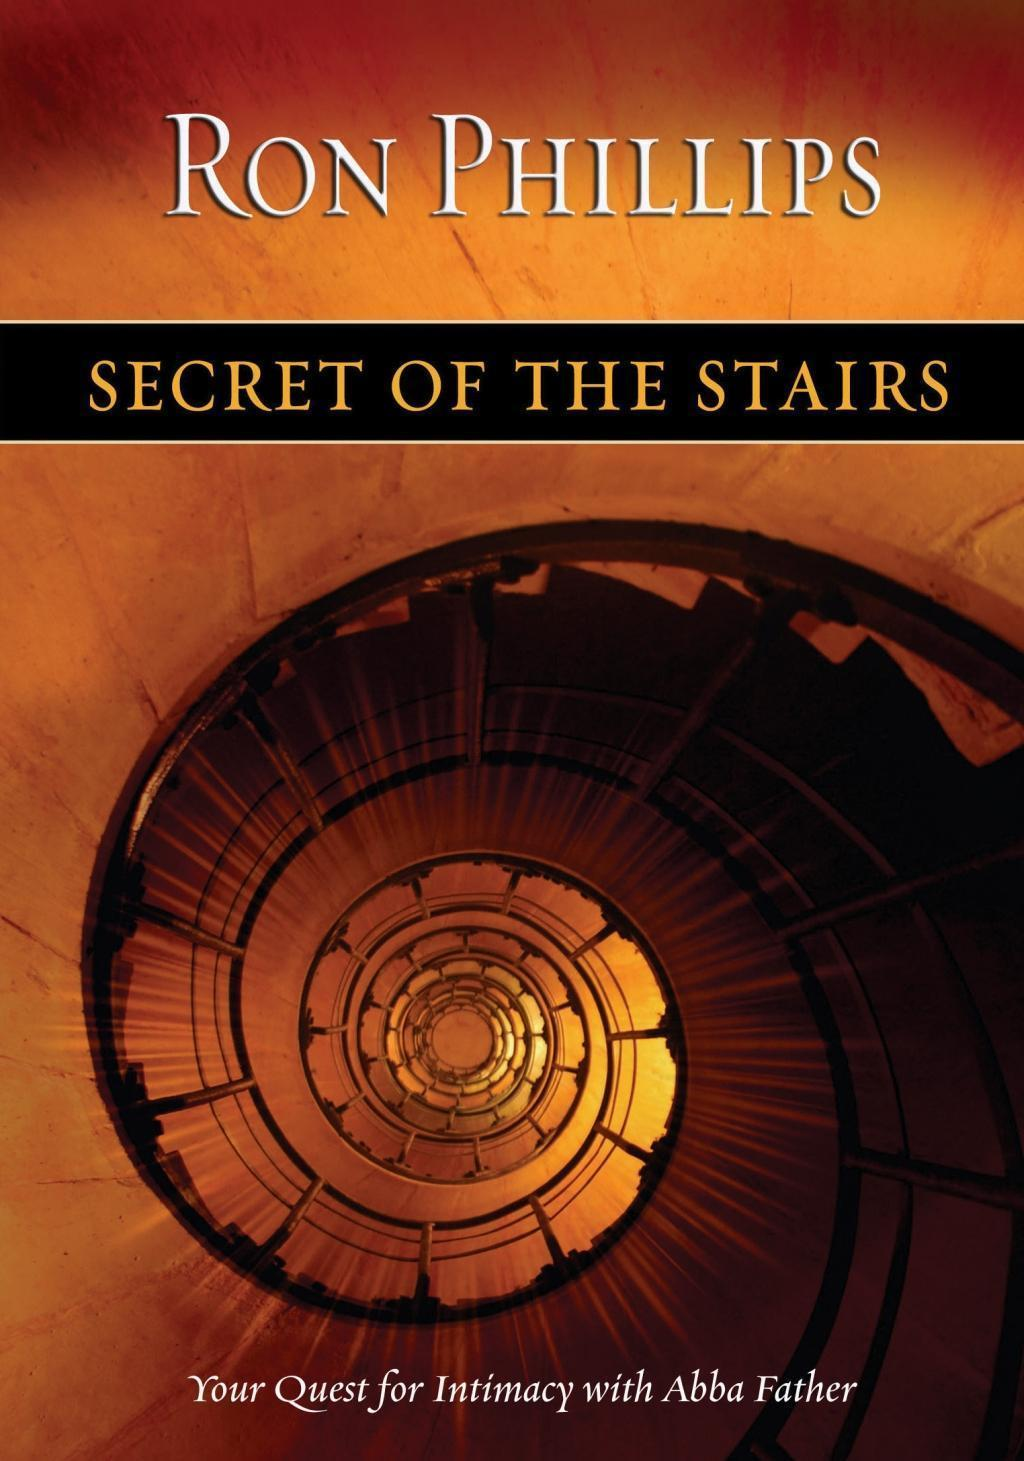 Secret of the Stairs